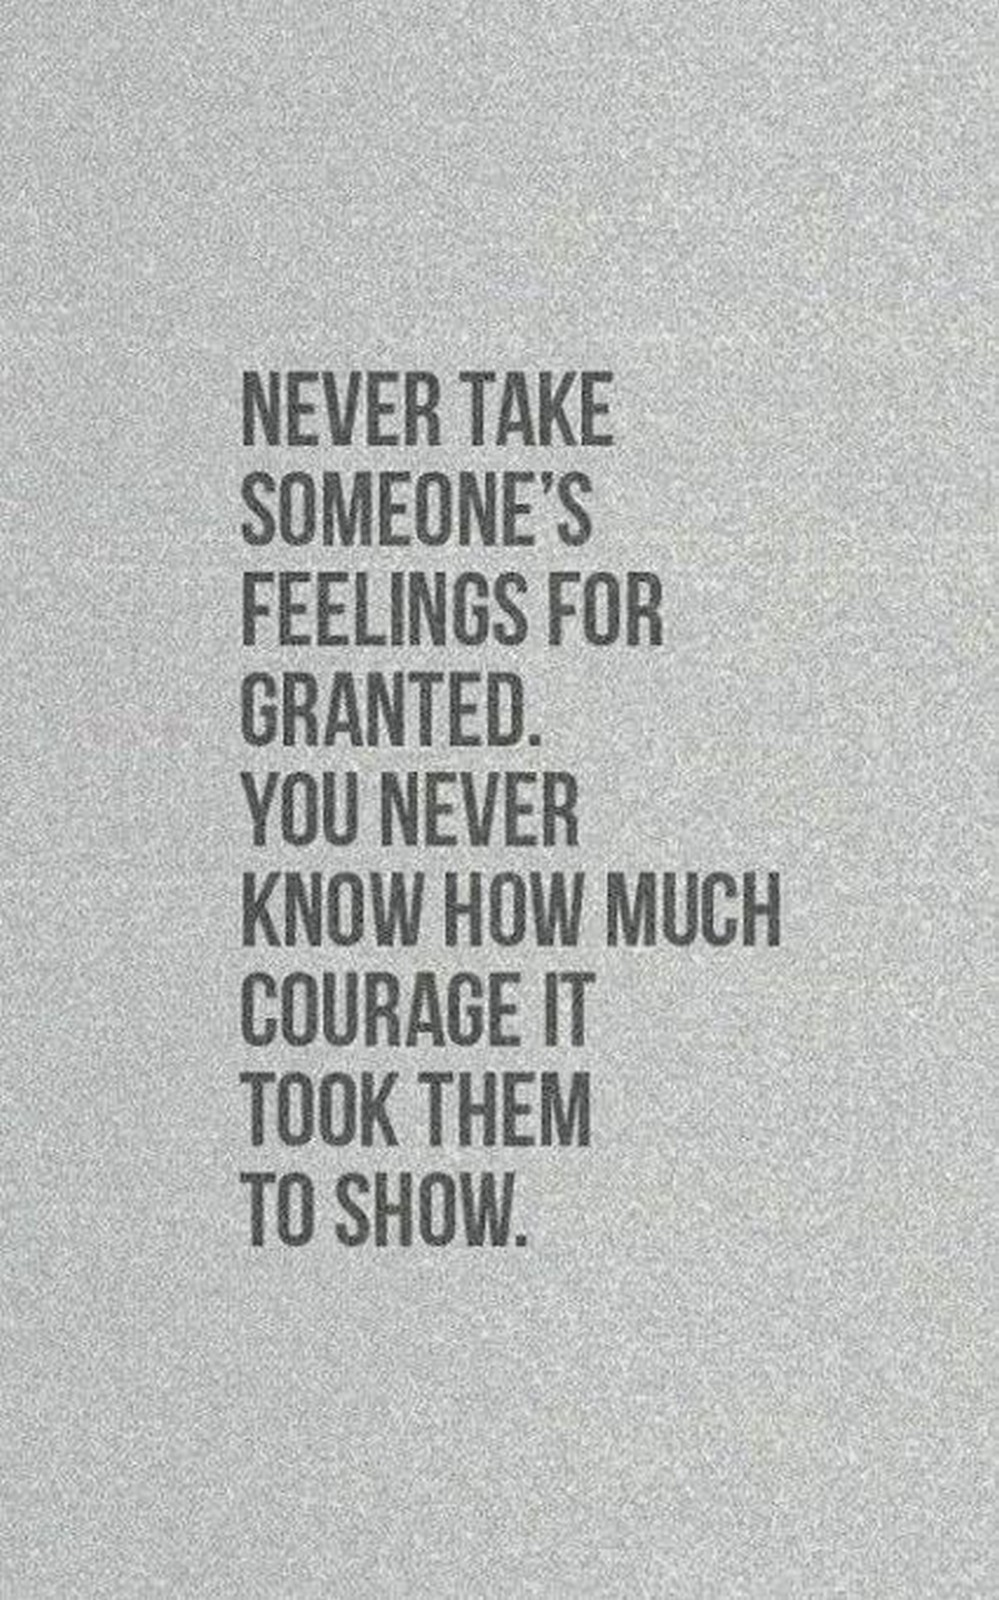 """55 Romantic Quotes - """"Never take someone's feelings for granted. You never know how much courage it took them to show."""""""